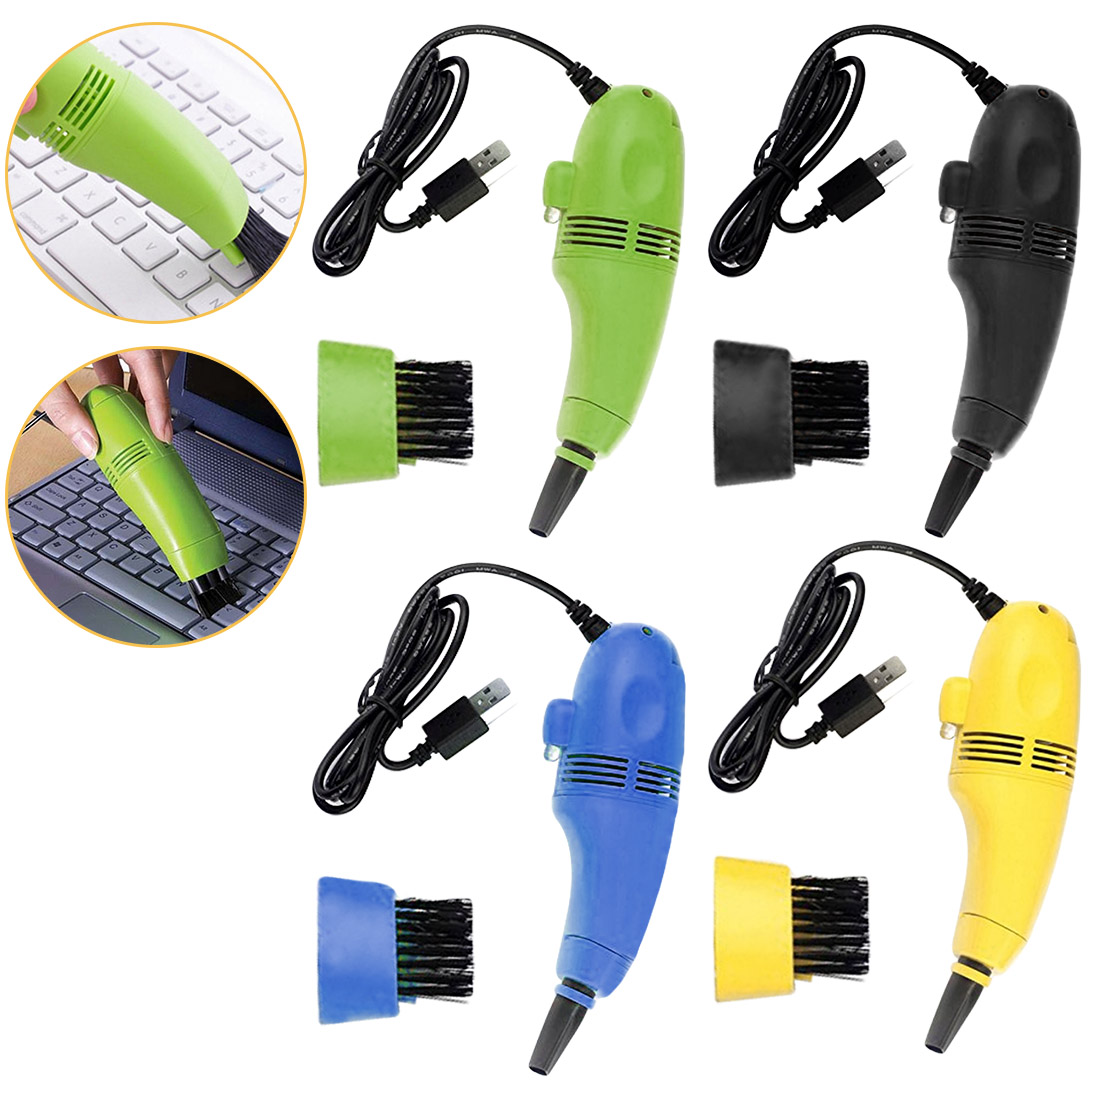 USB Vacuum Cleaner Designed For Cleaning Computer Keyboard For Notebook Laptop Tablet PC